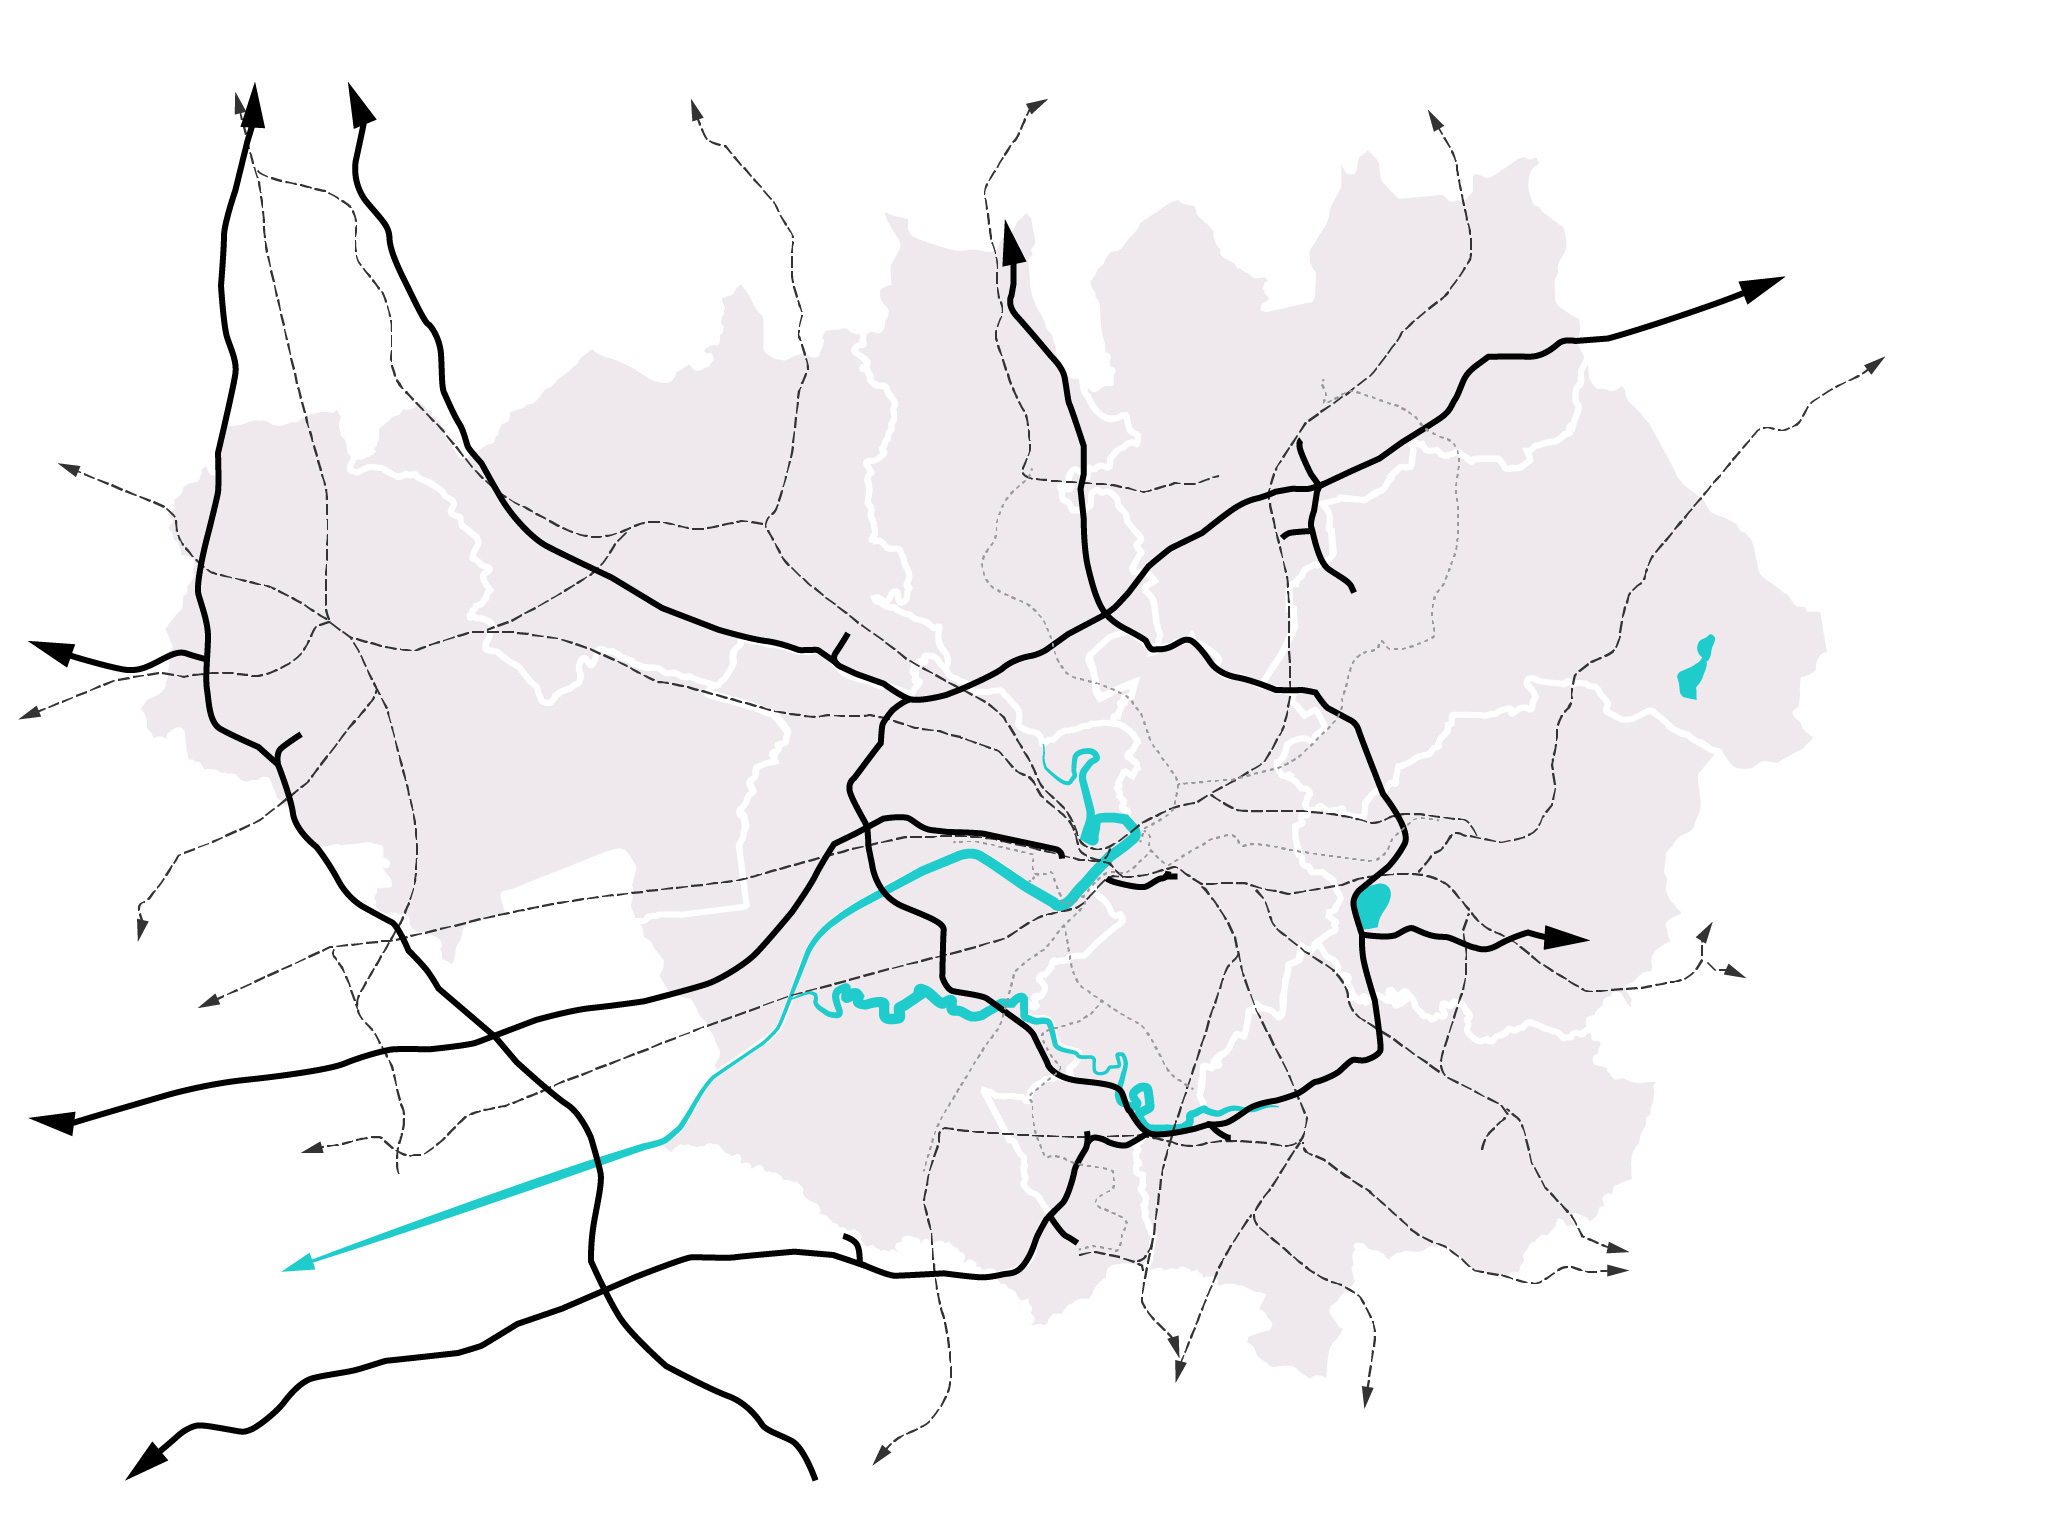 Map of the Manchester that area we operate in